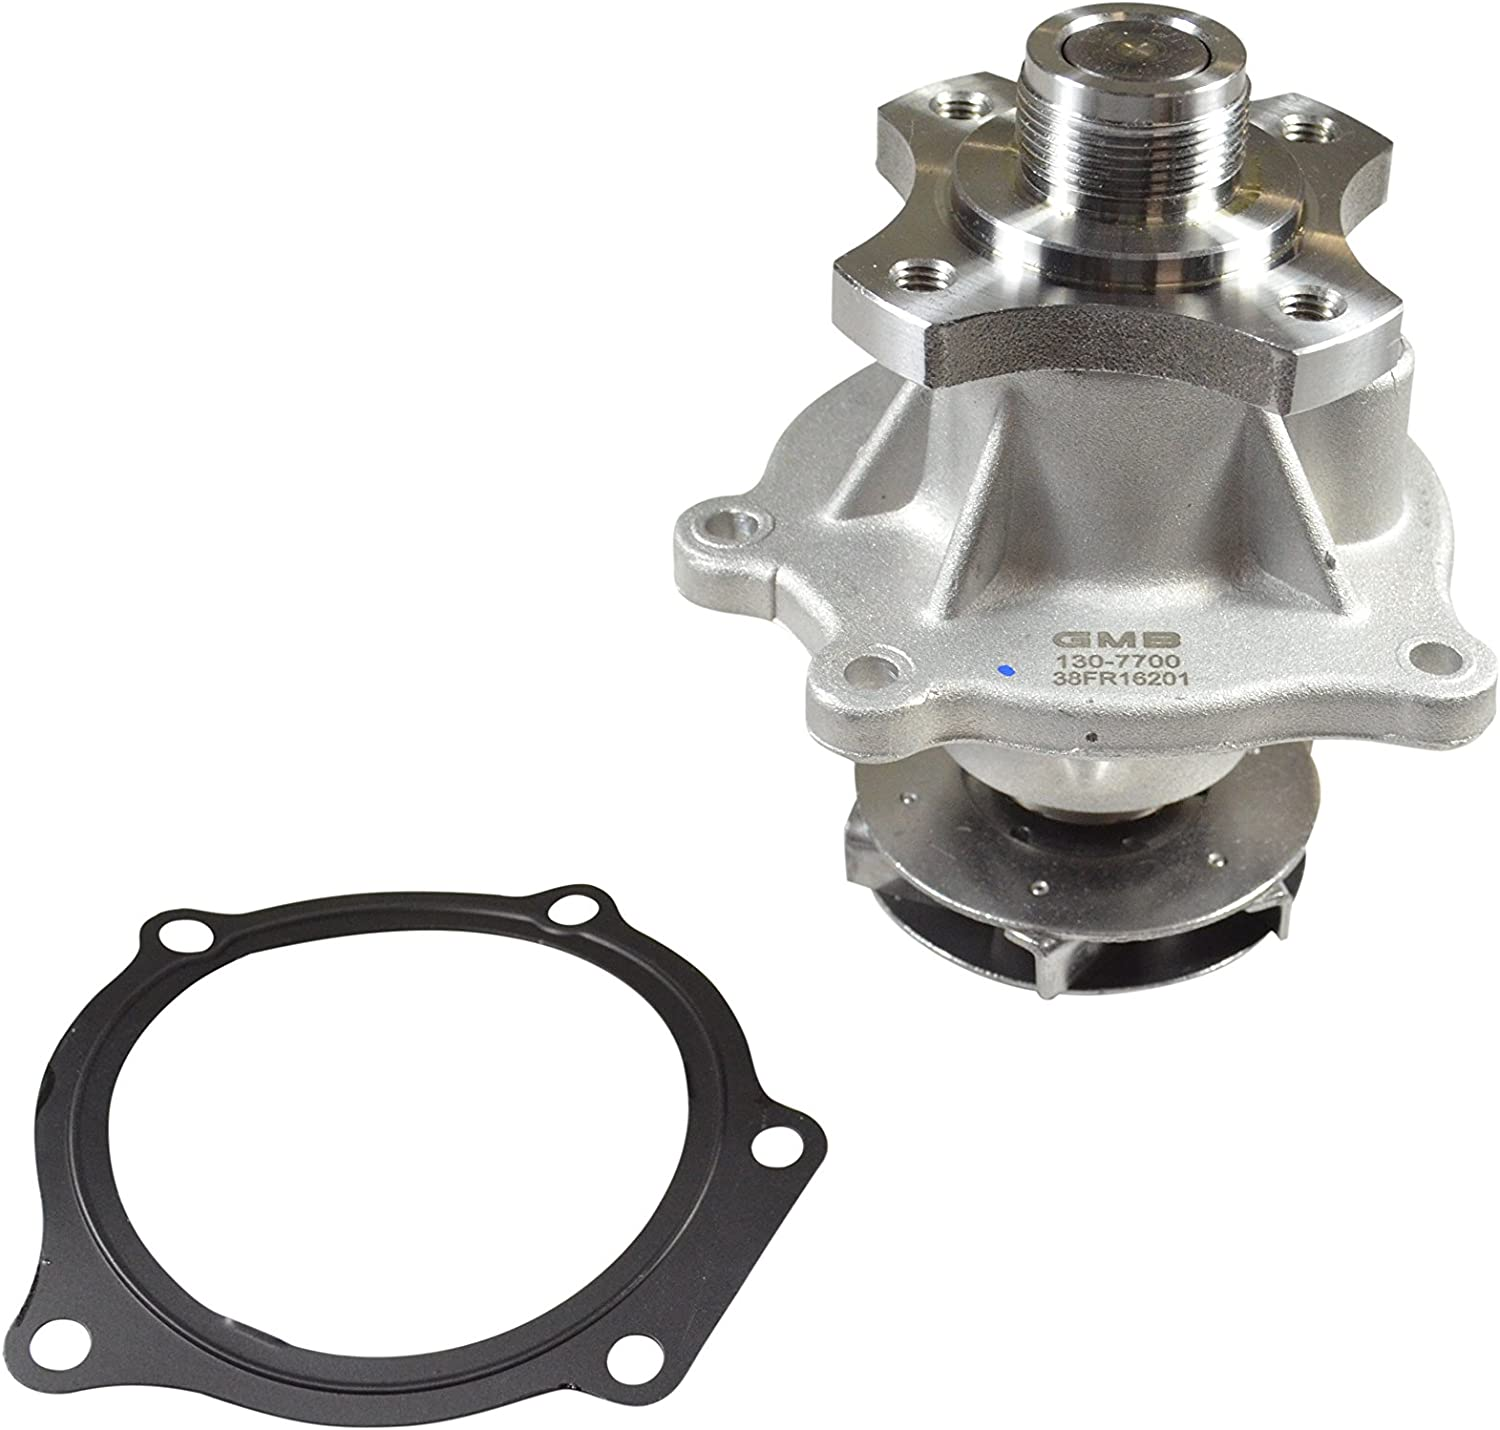 GMB 130-7700 OE Replacement Water Pump with Gasket